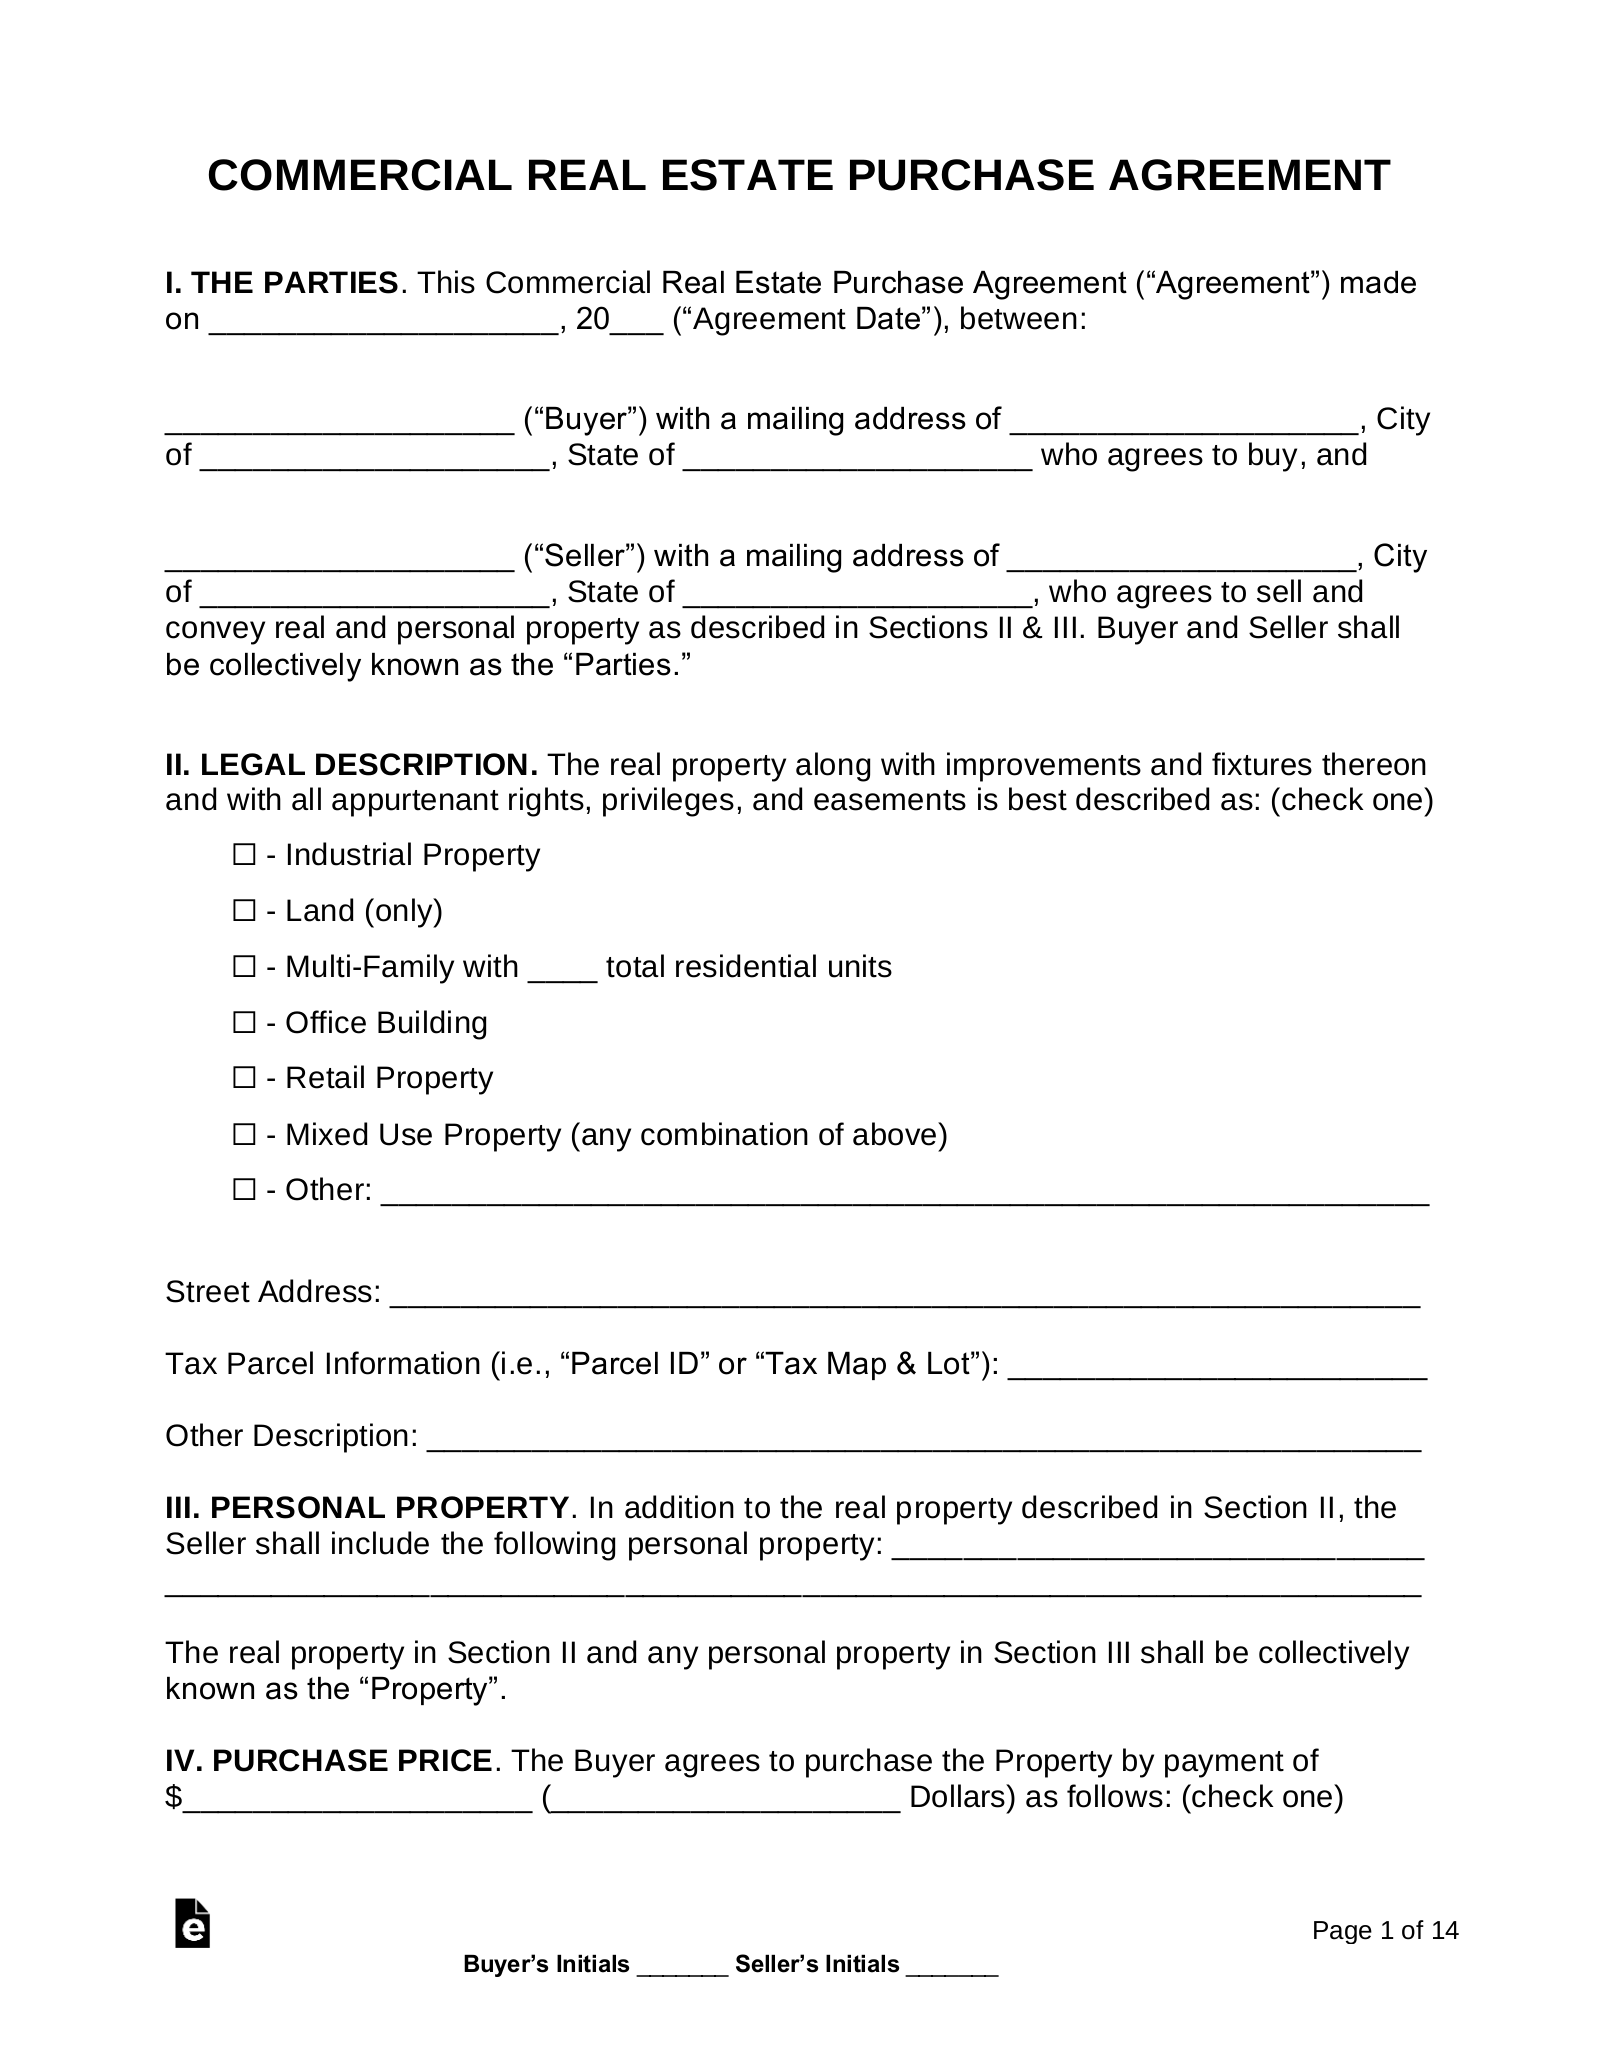 Free Commercial Real Estate Purchase Agreement   PDF   Word – eForms